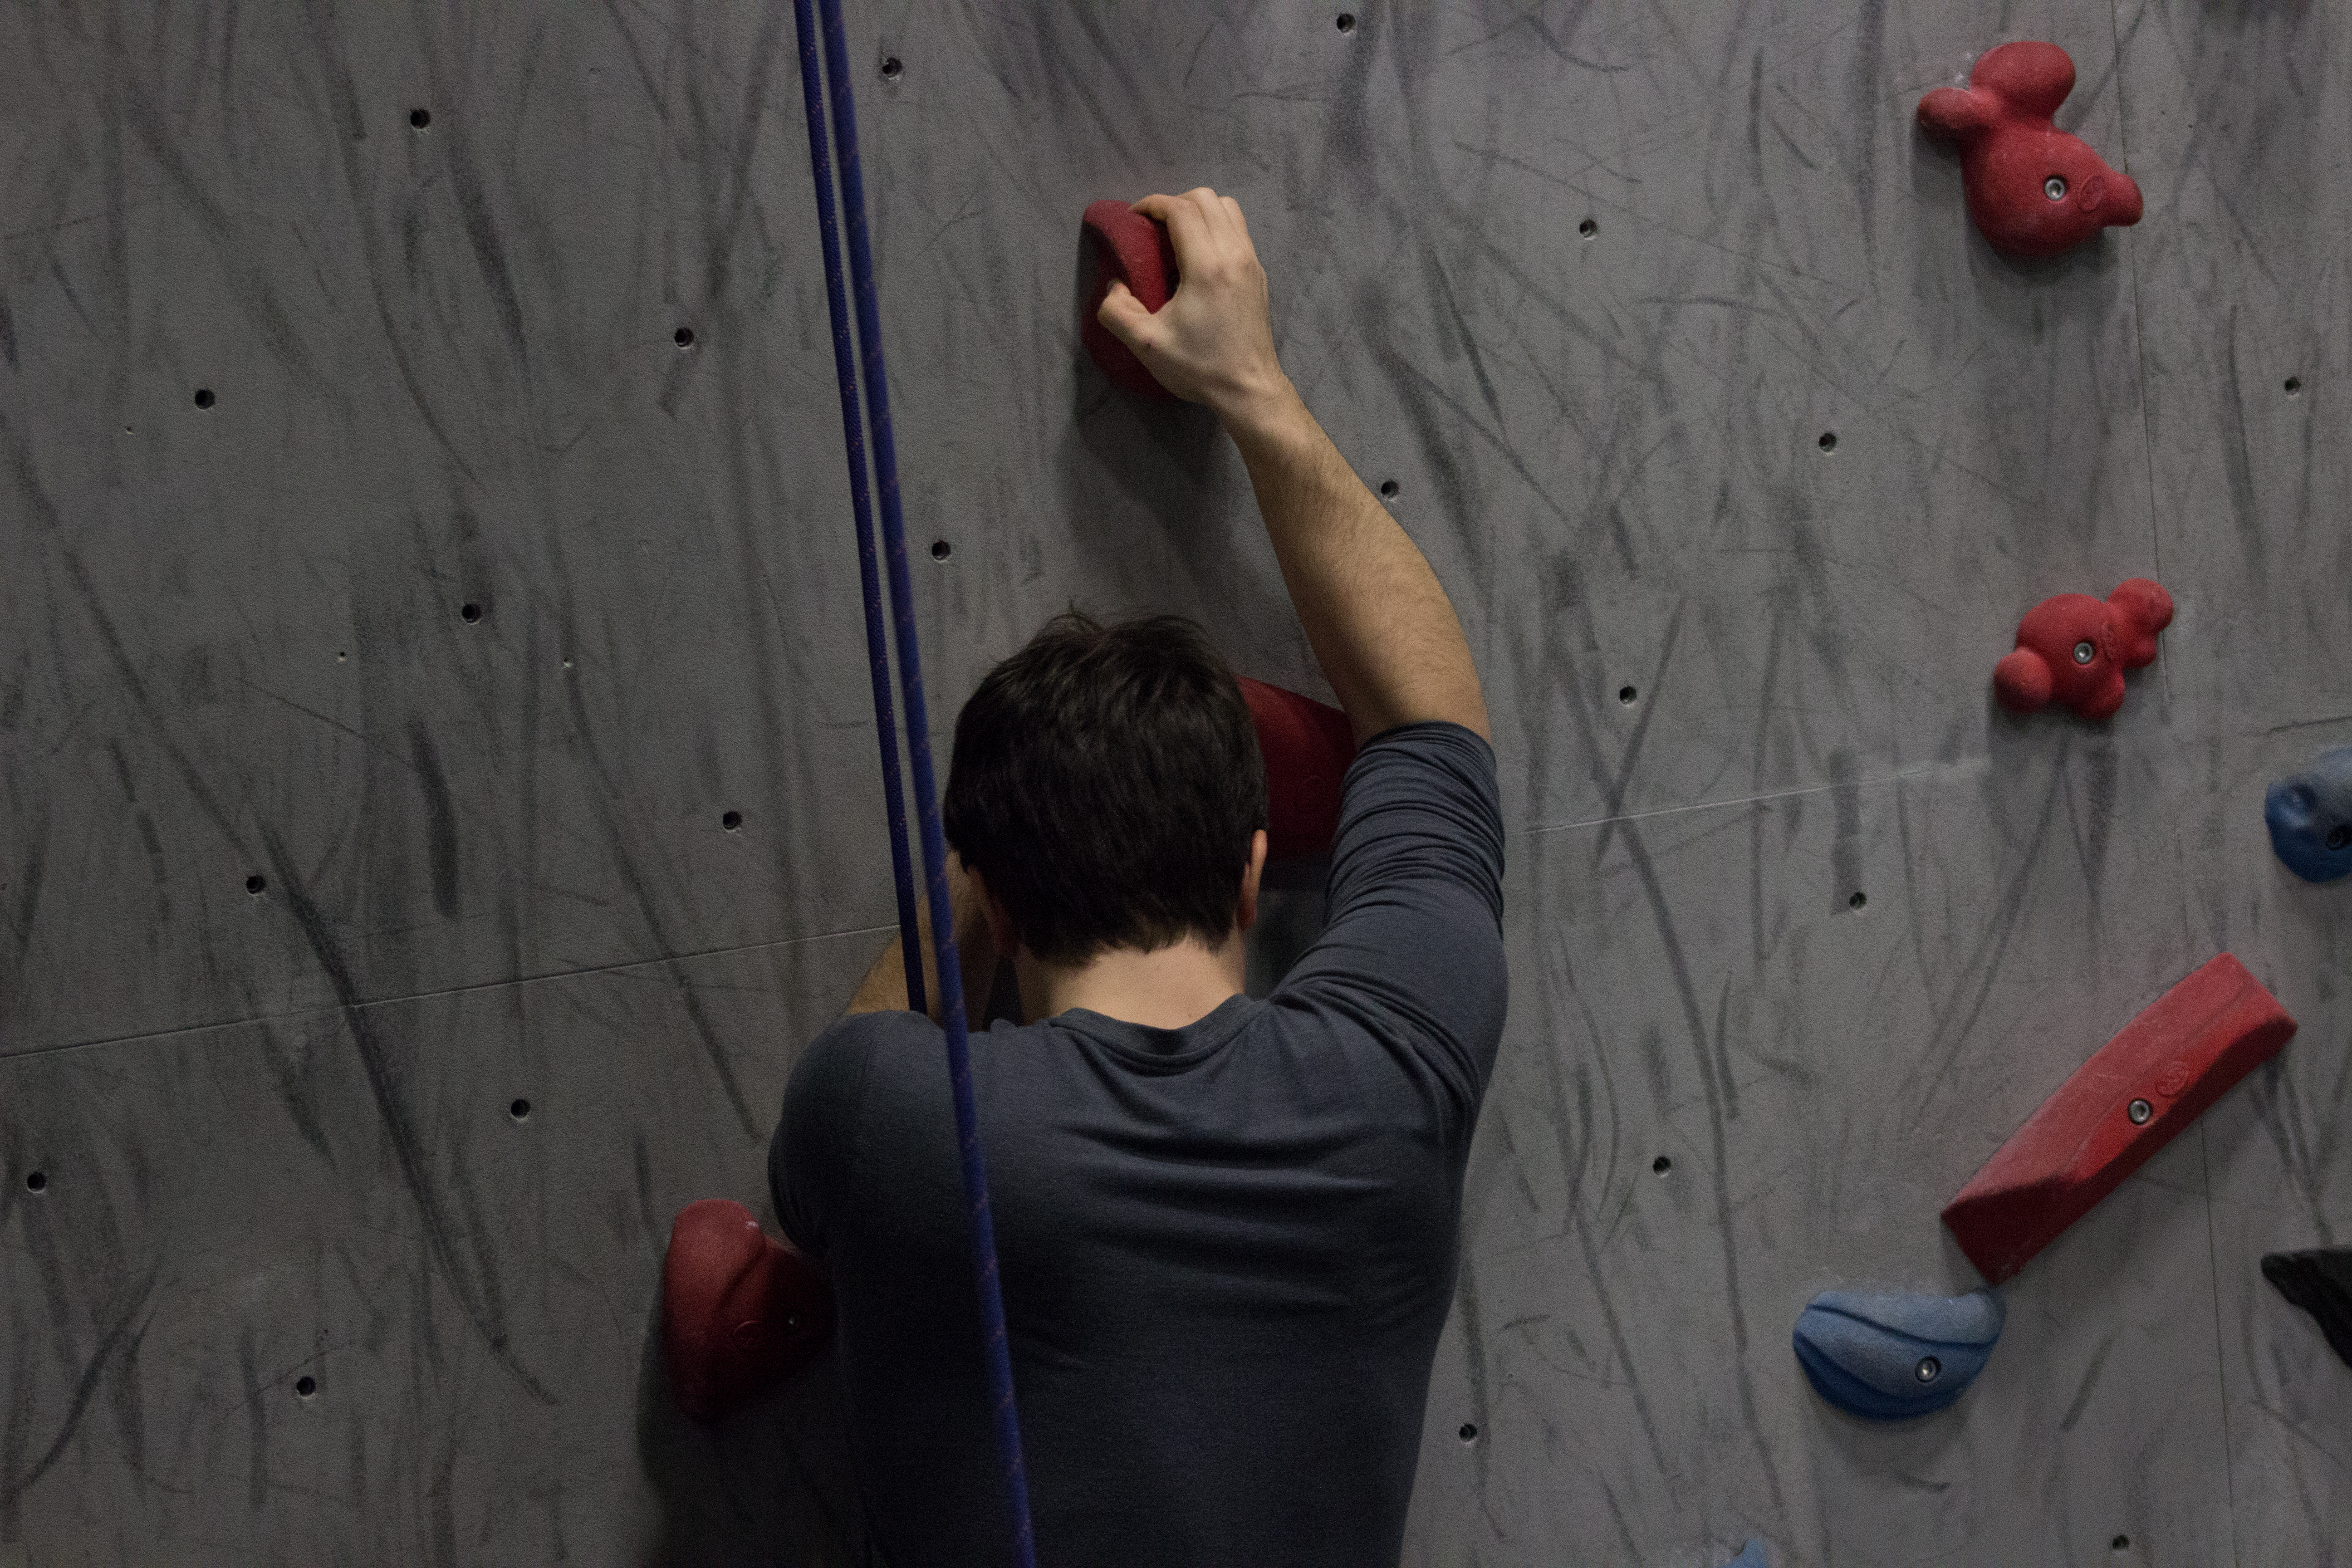 A climber makes their way up the wall. Photos by Melissa Martella.